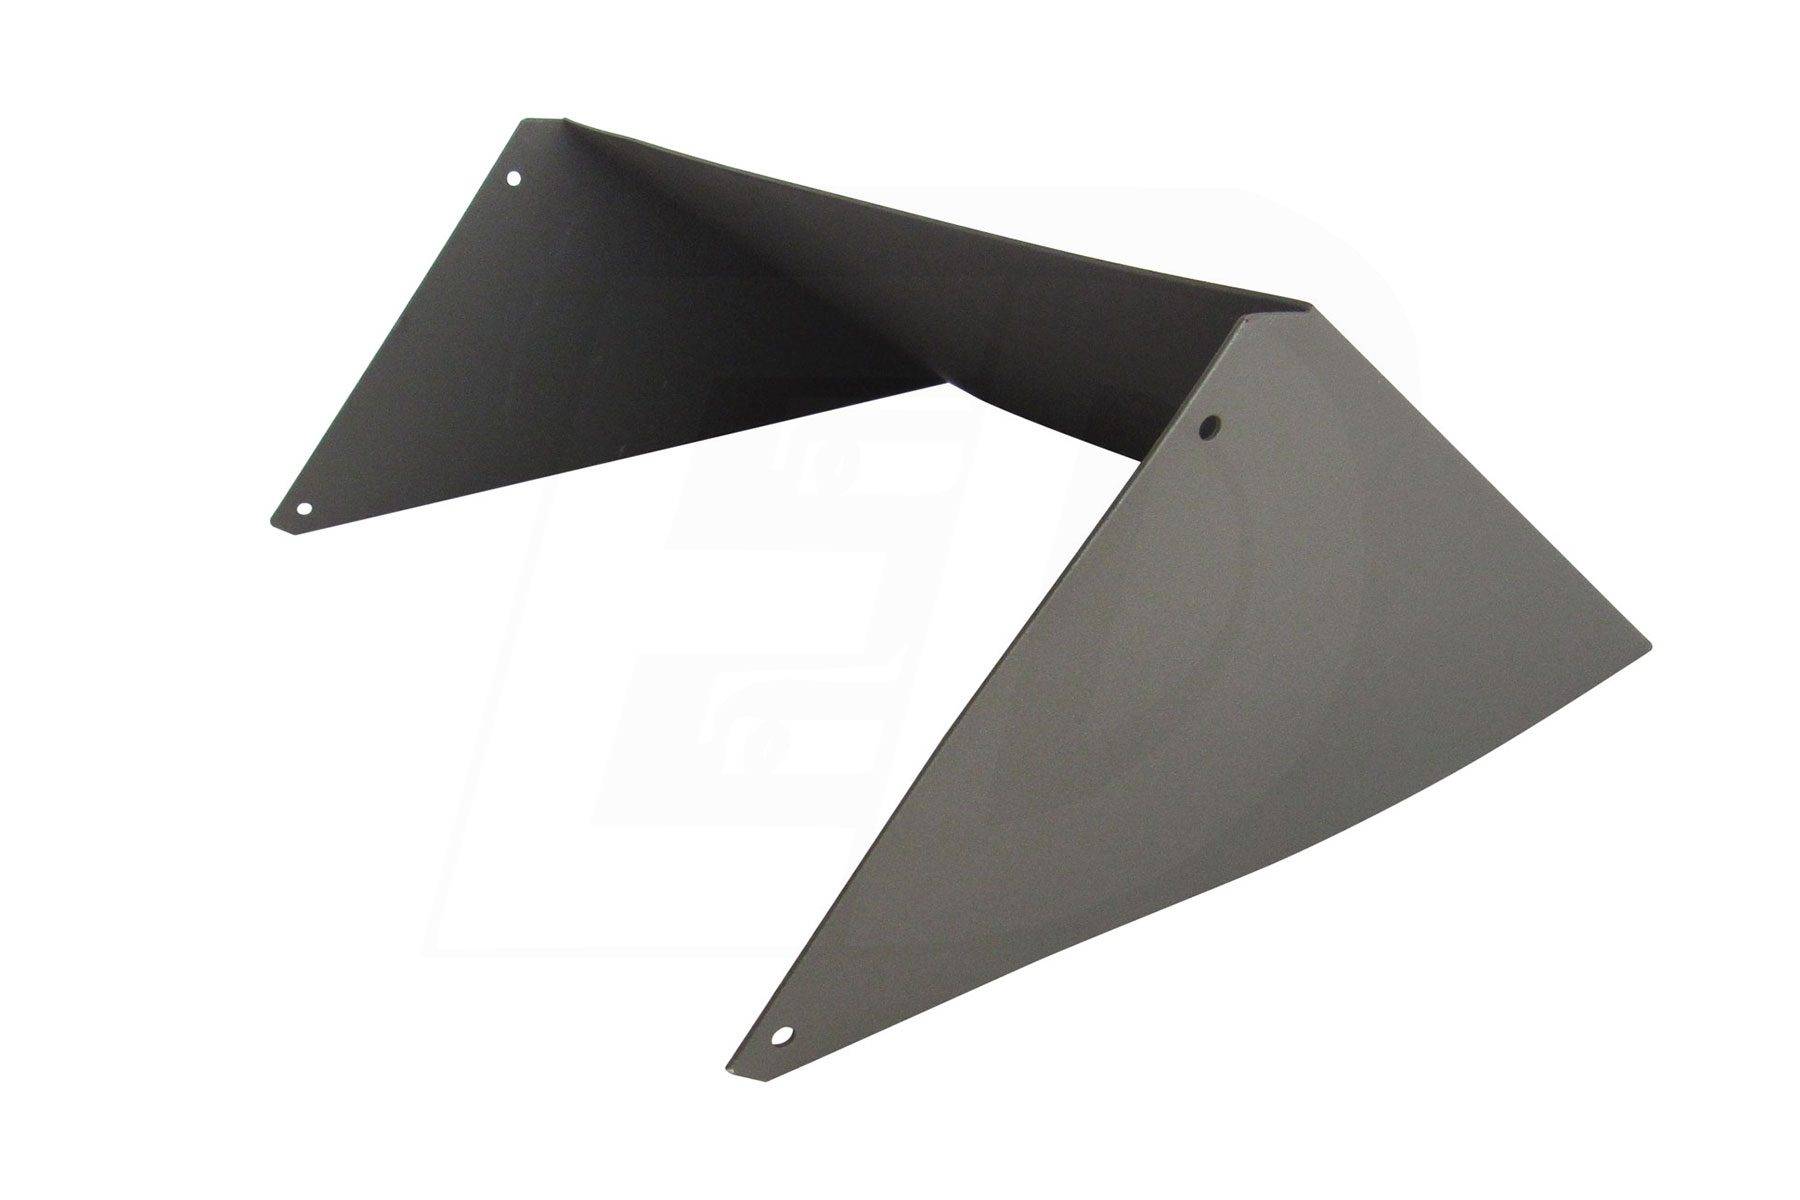 Dark Sky Compliant Shield for WP4M LED Wall Pack